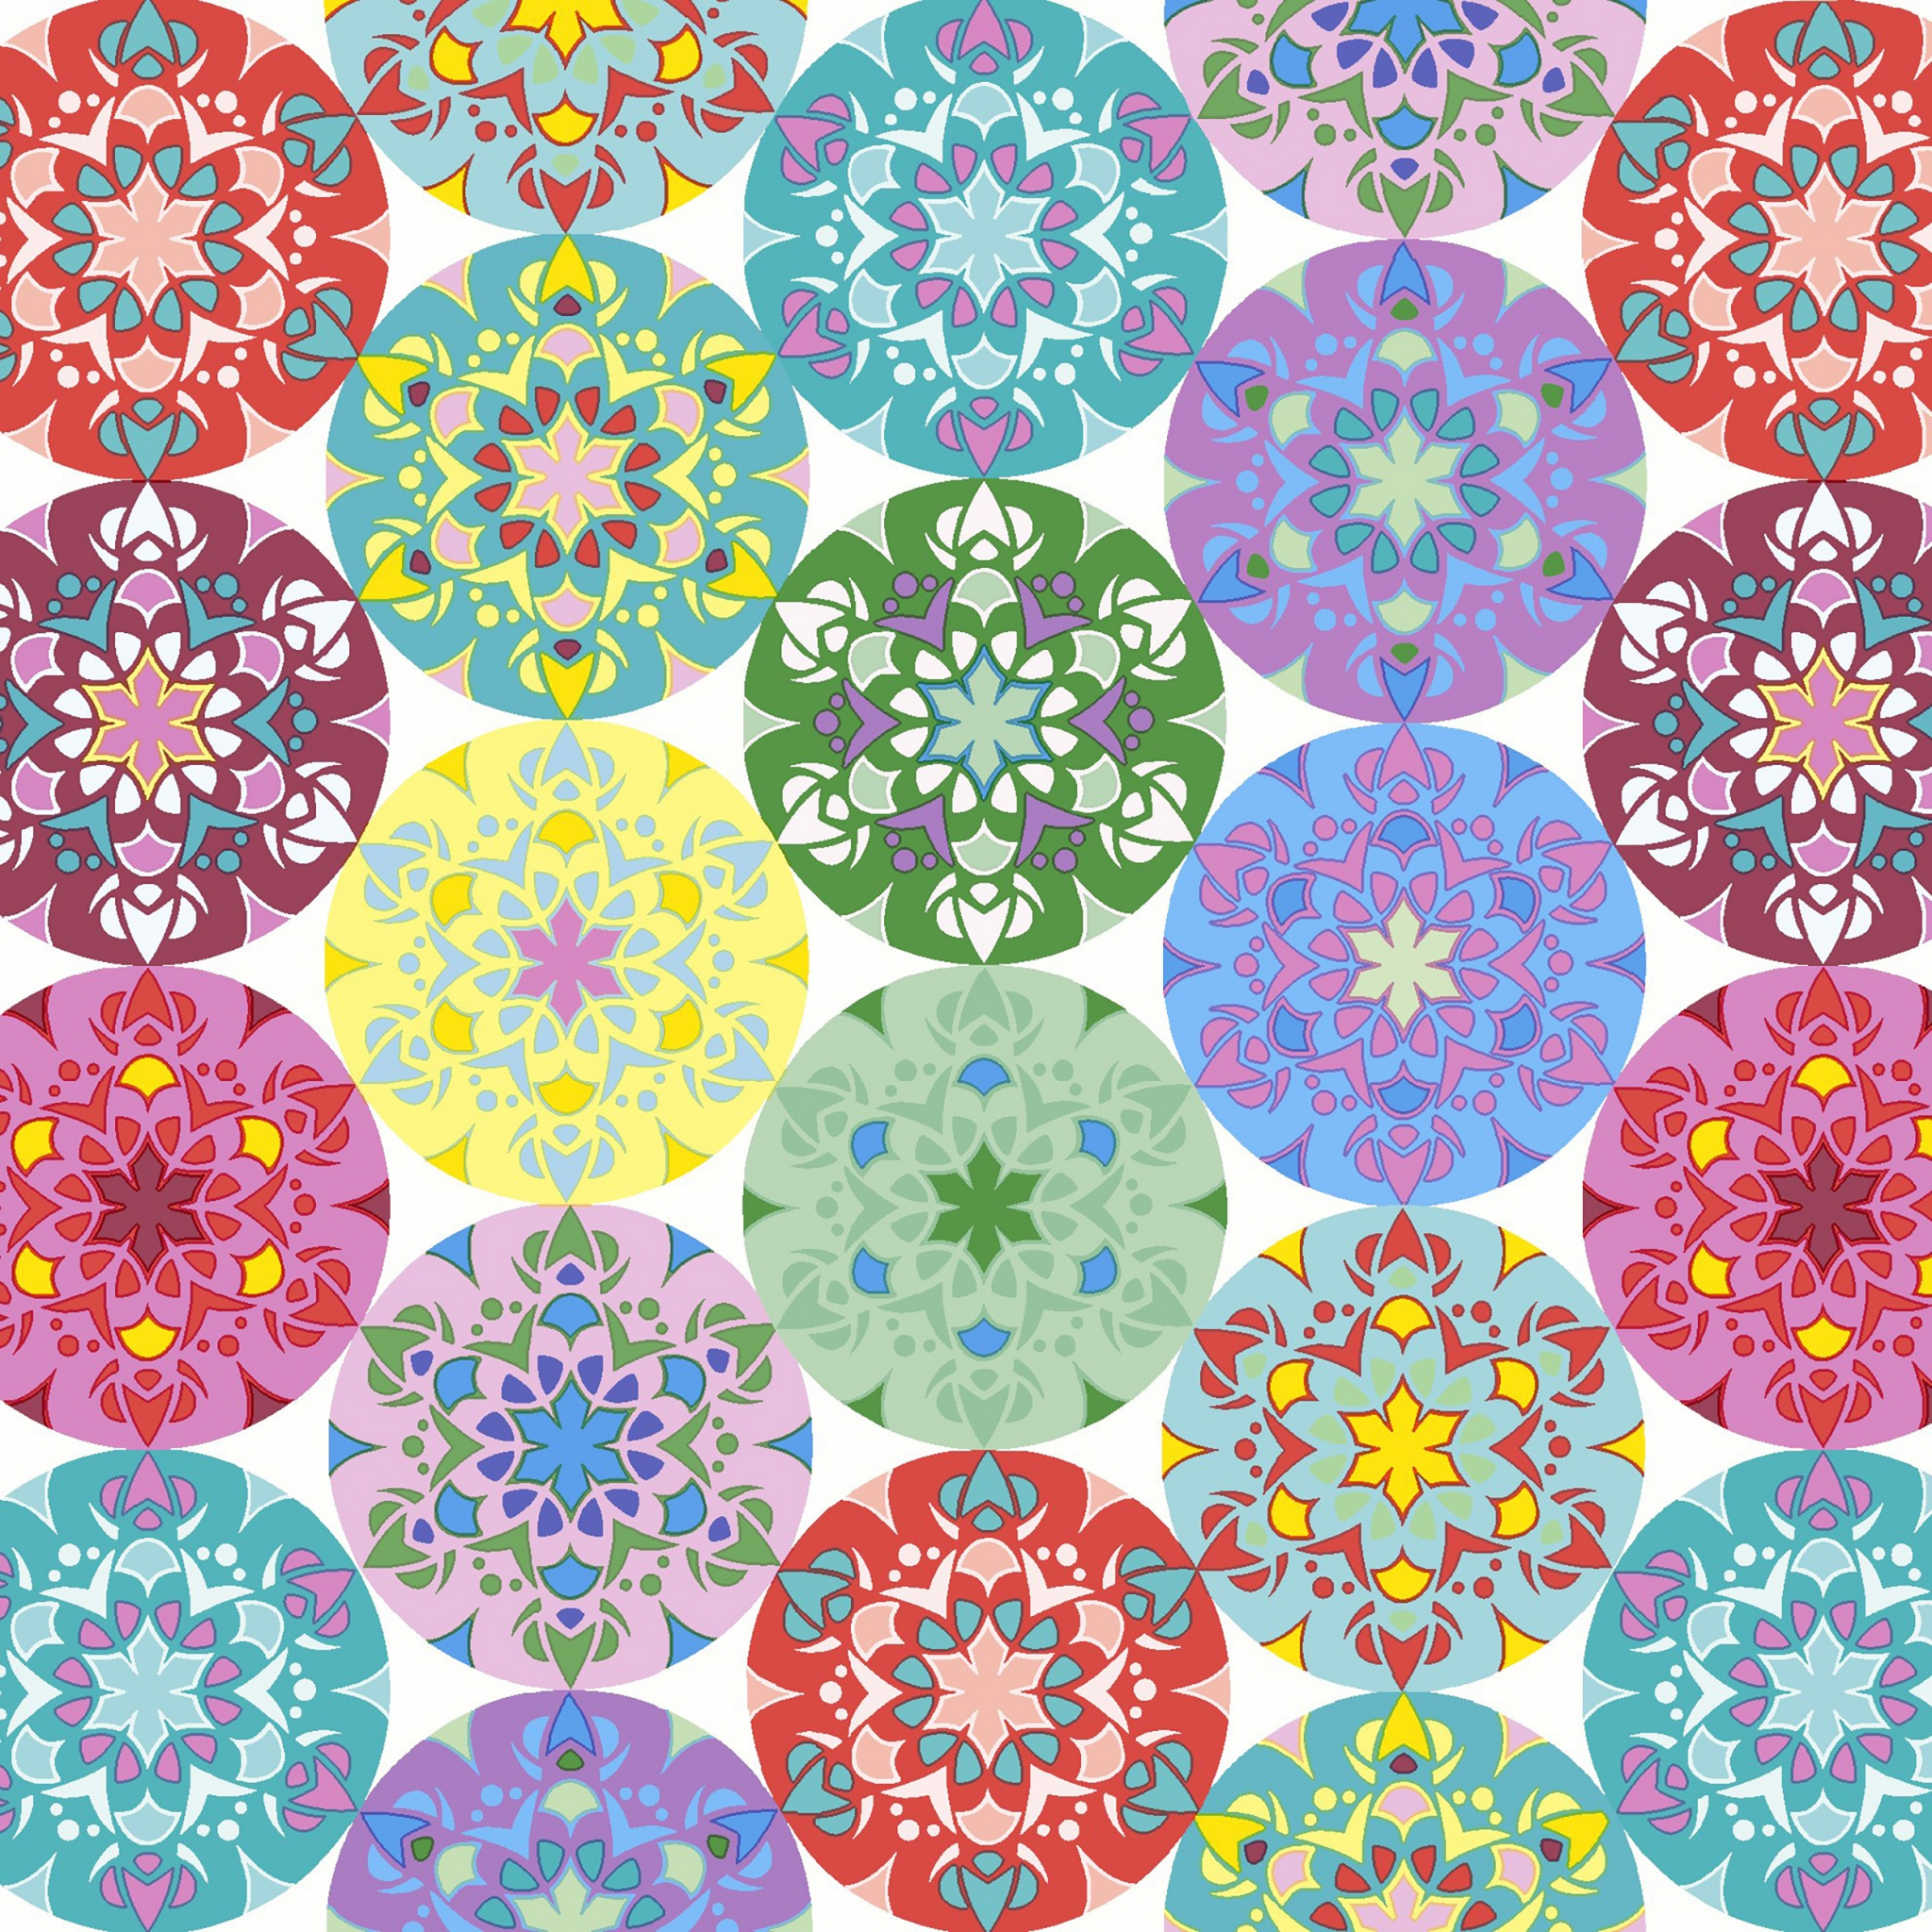 20 Servietten - 33 x 33 cm Mandala multi,  Sonstiges - Muster,  Everyday,  lunchservietten